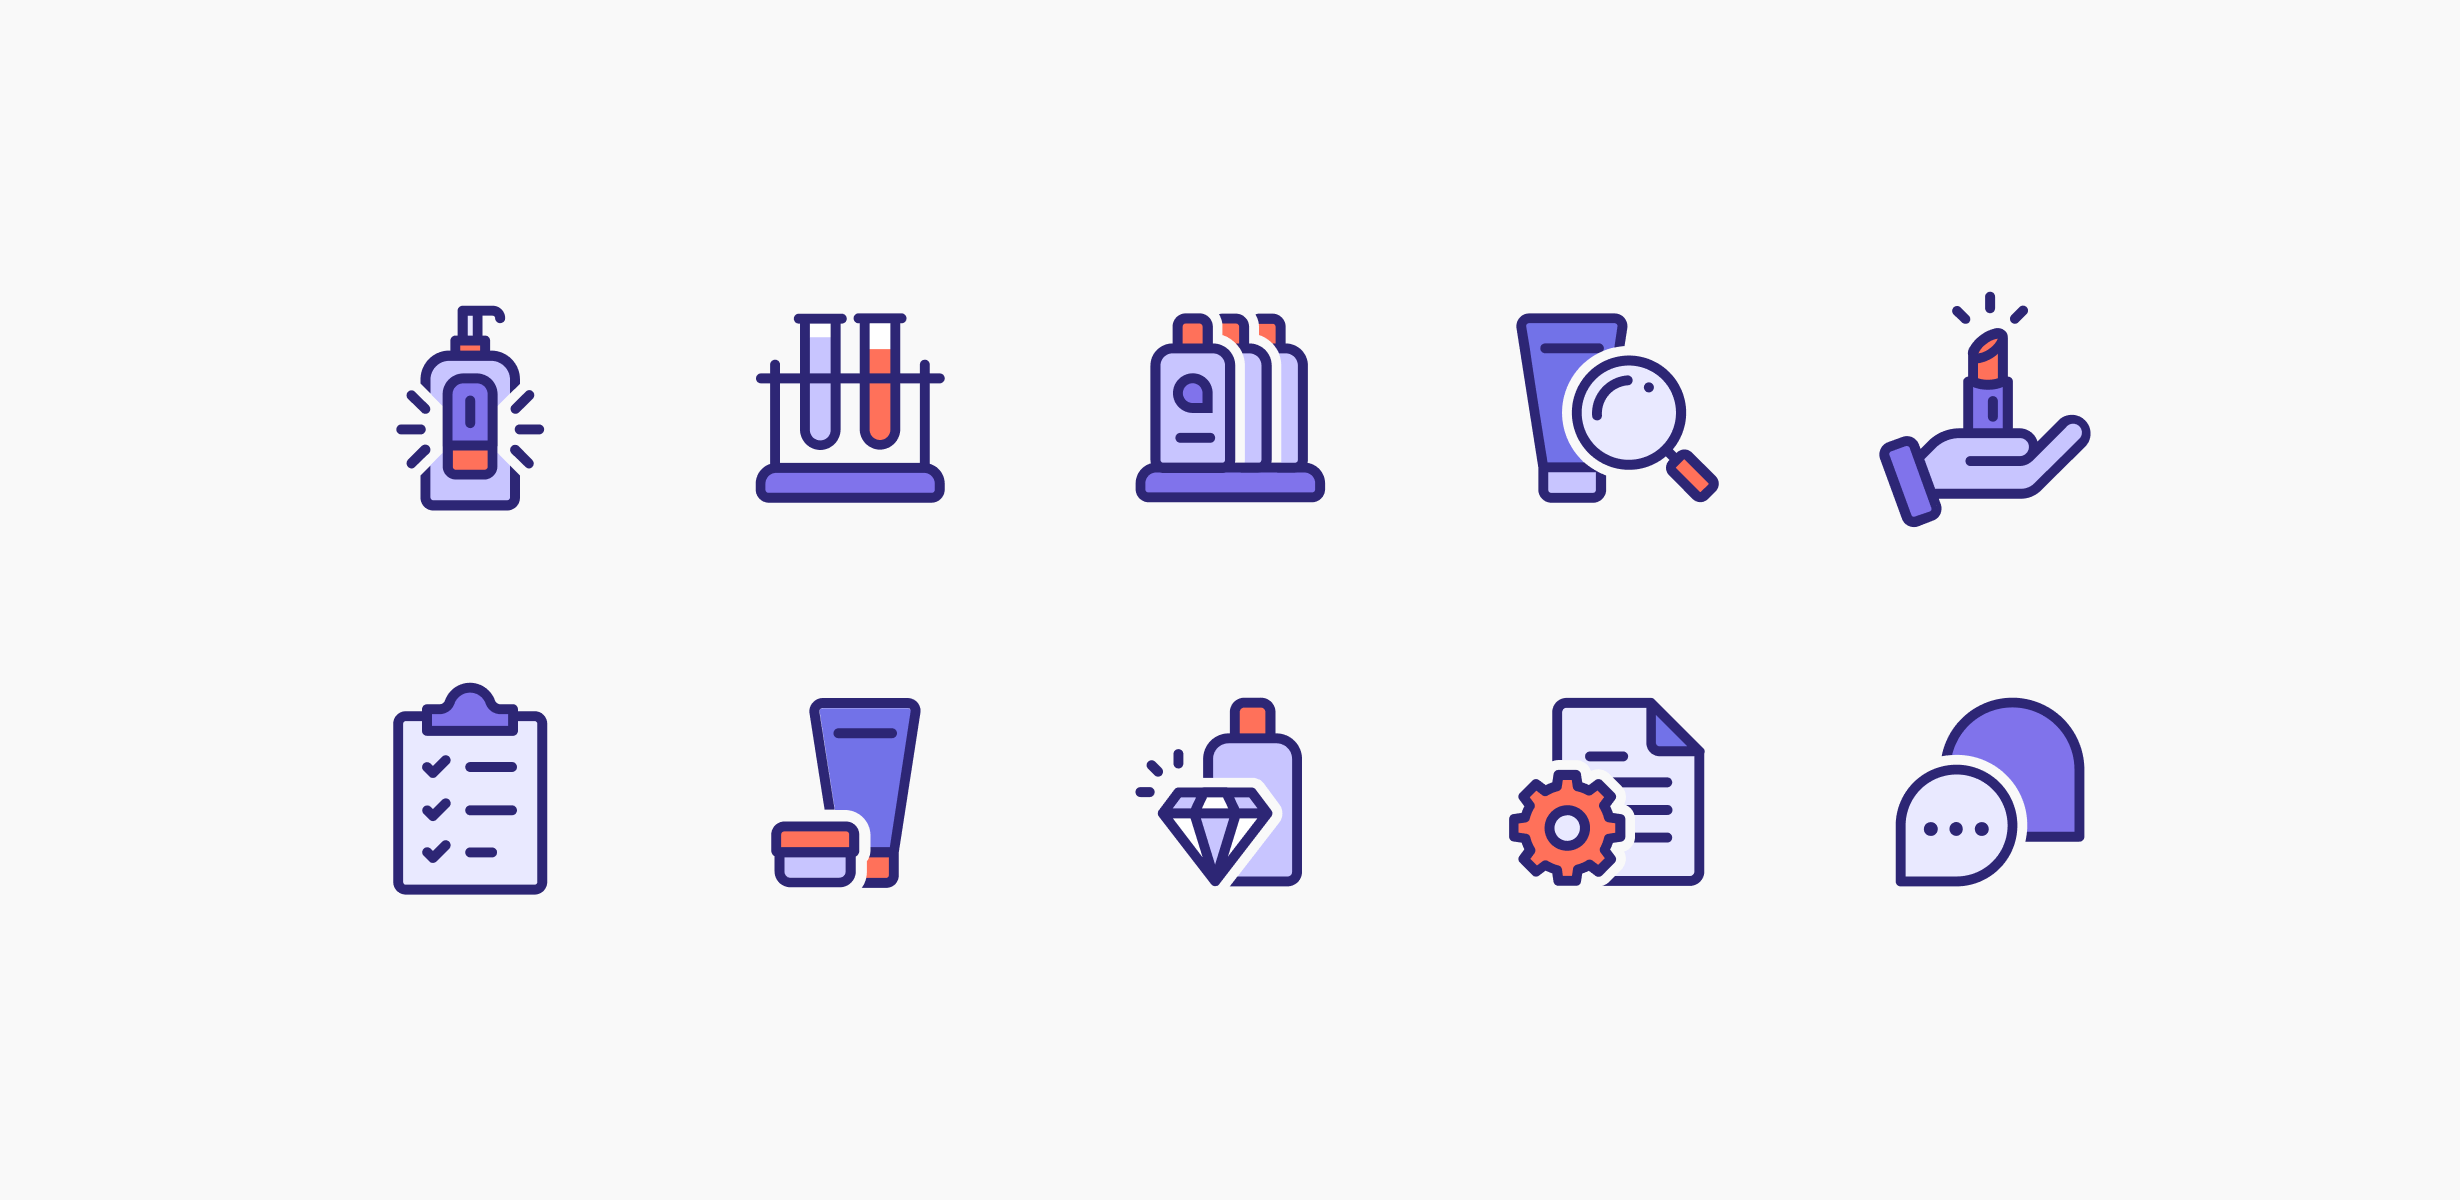 12 icons depicting cosmetics products and creation tools that are used on the Ozmi website.